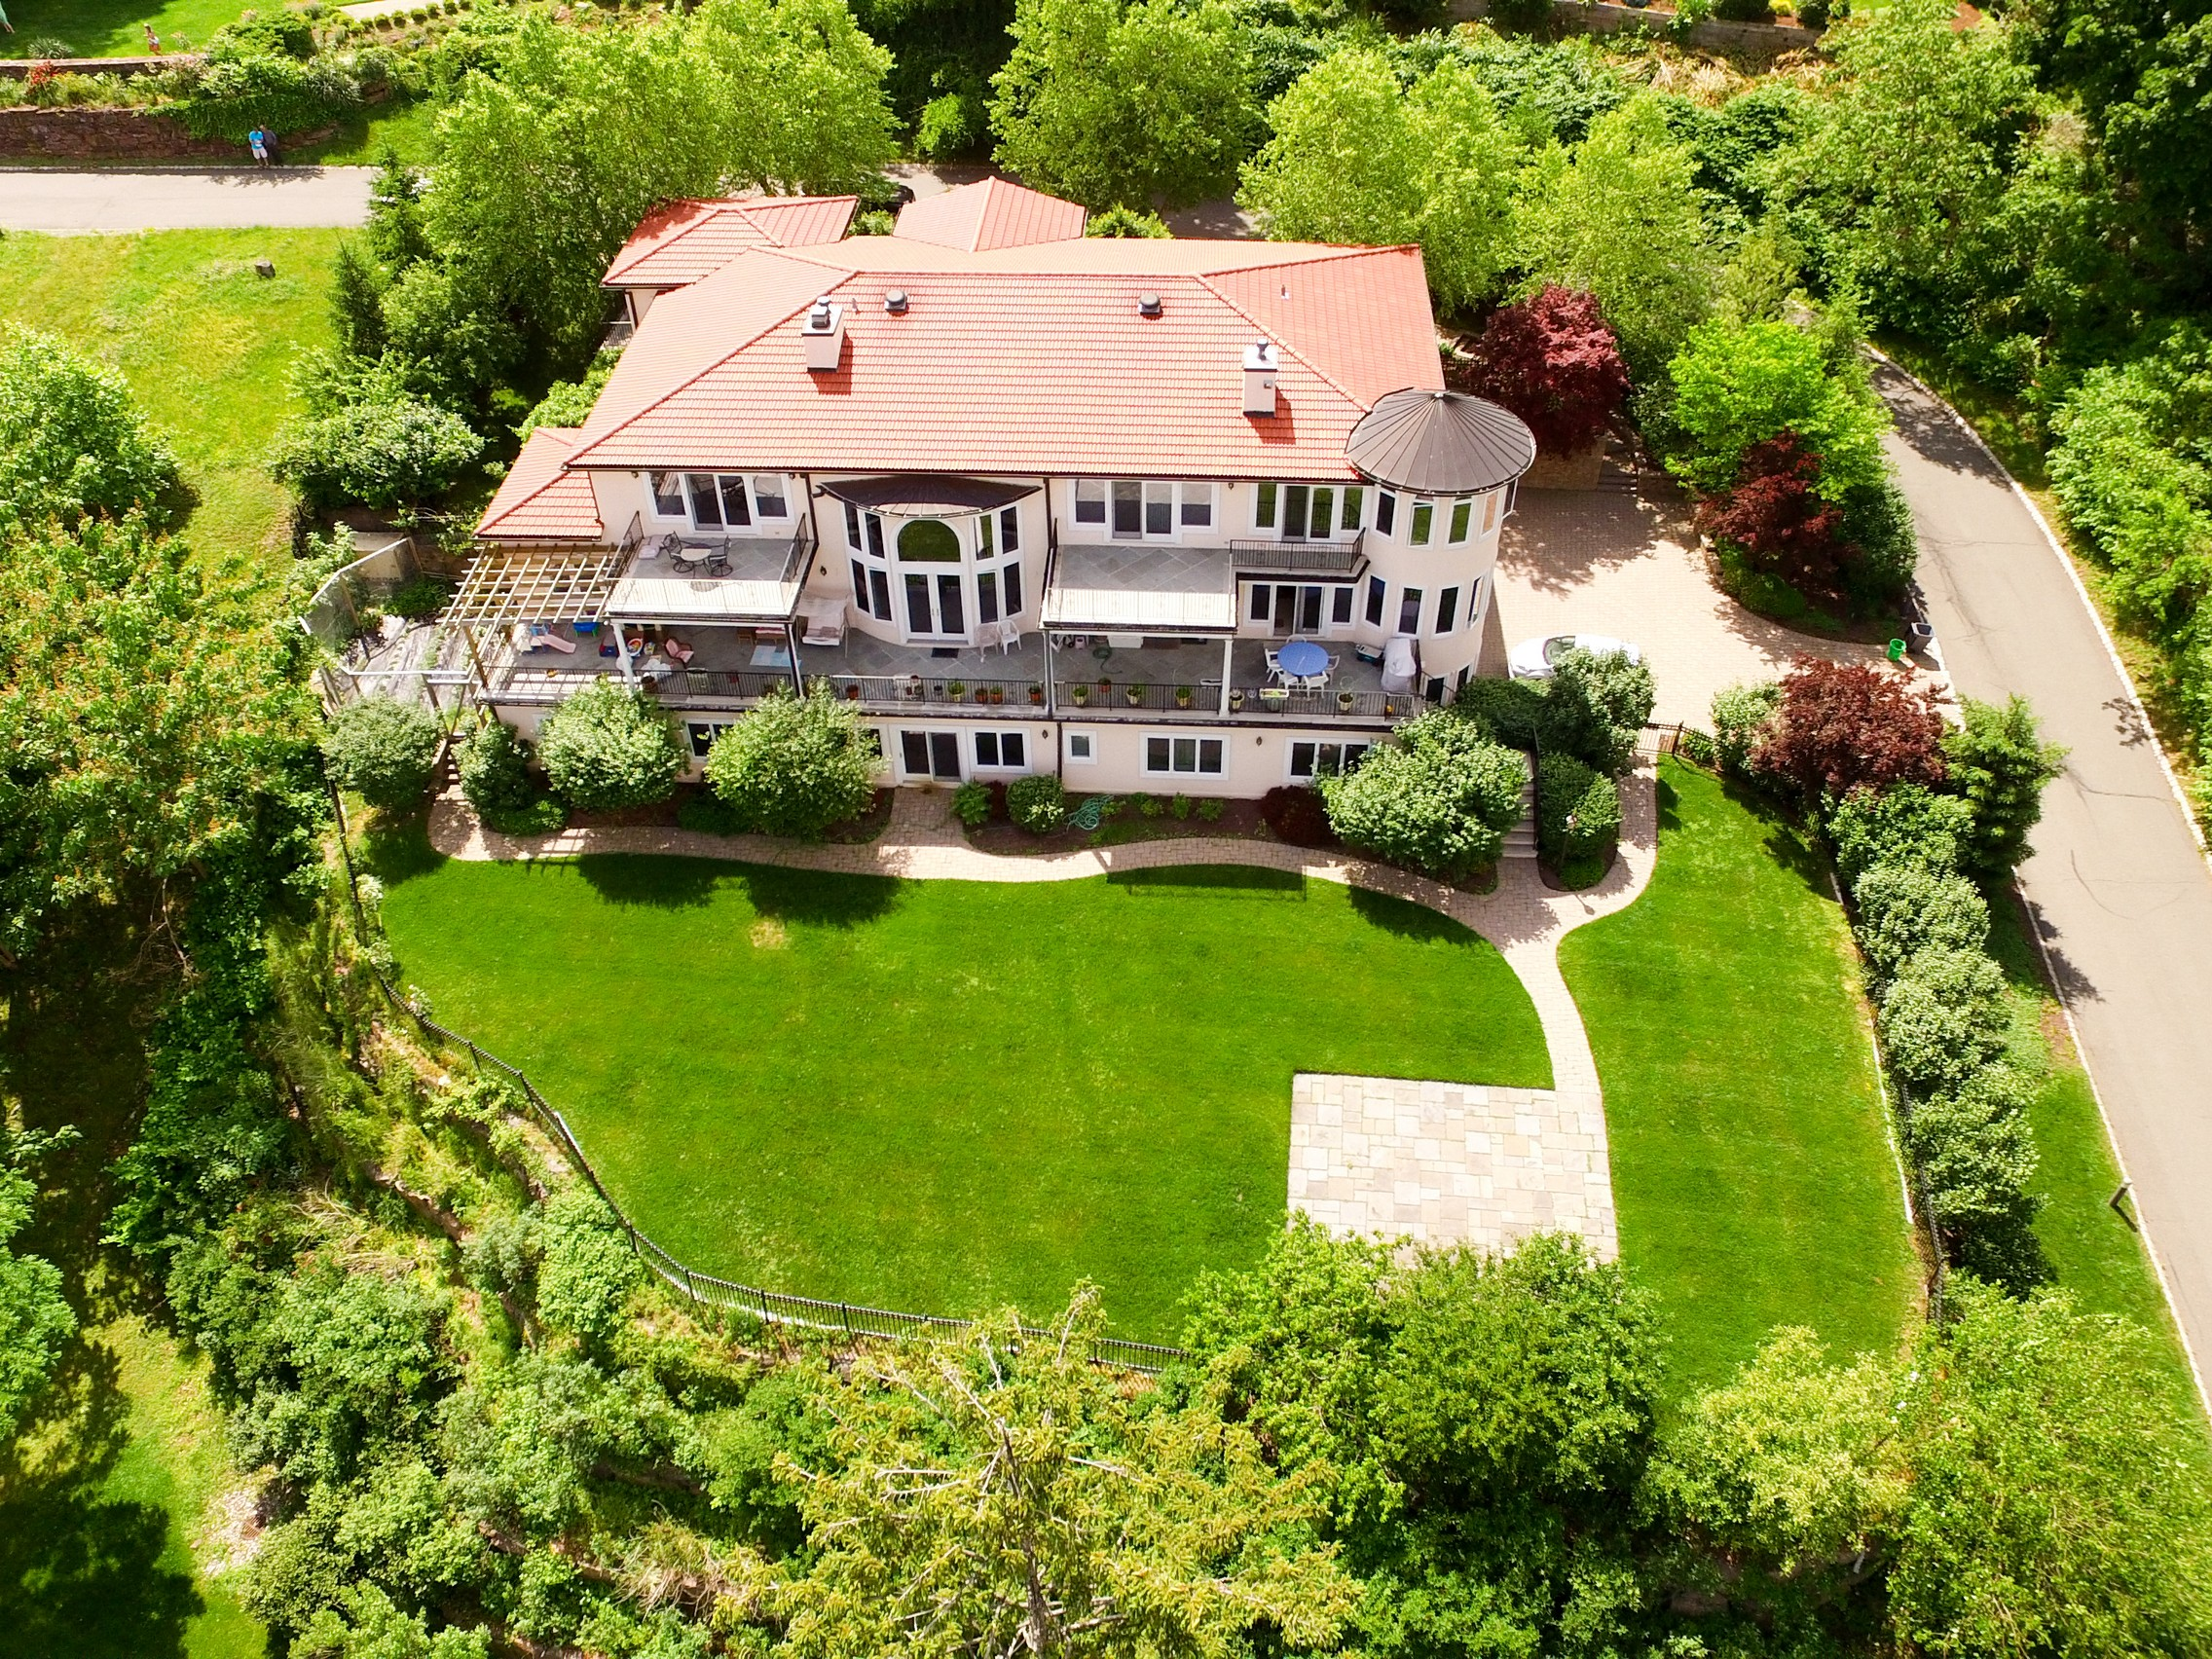 Maison unifamiliale pour l Vente à Majestic Home with Expansive Hudson River Views 6 Tompkins Court Upper Nyack, New York, 10960 États-Unis